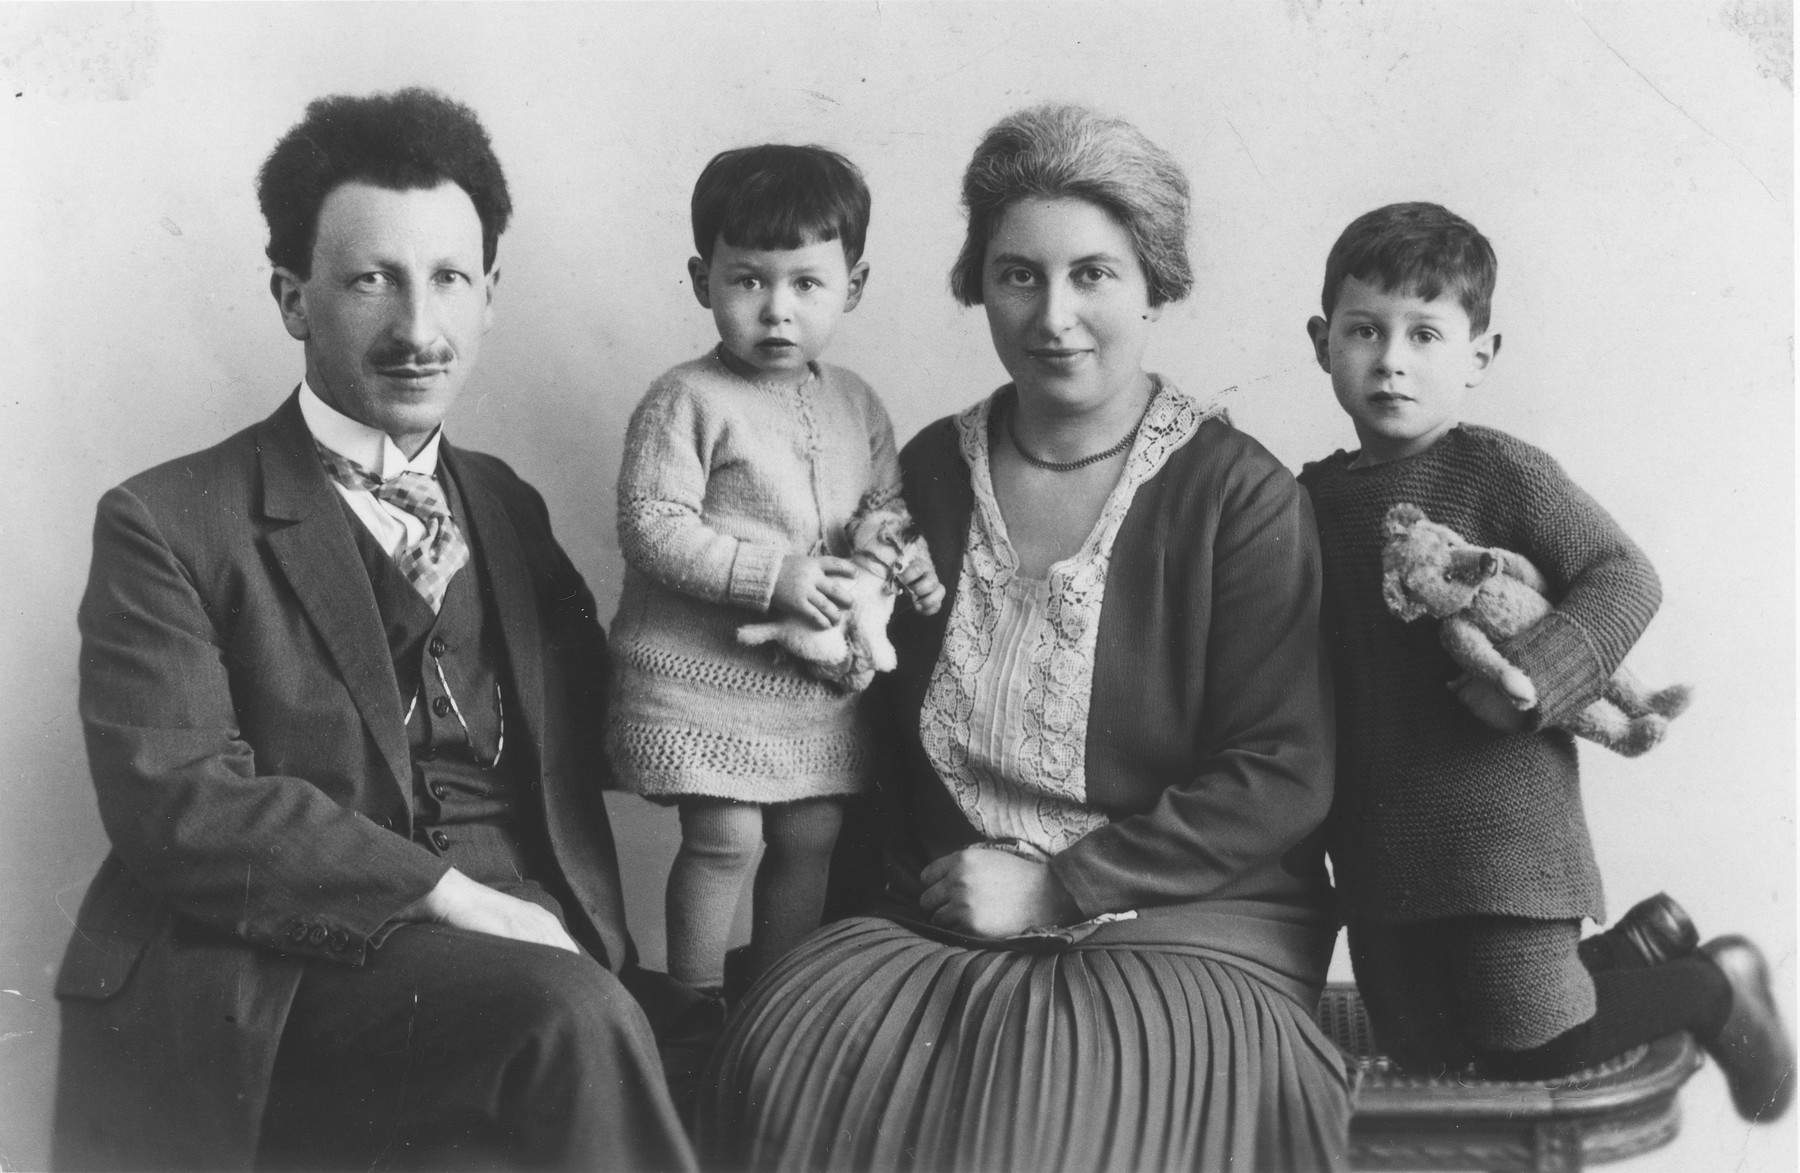 Studio portrait of the Wijnberg family from Groningen, Holland.  Pictured from left to right are, Jonas, Henny, Mietje and Bram Wijnberg.  Jonas Wijnberg, the uncle of Selma Wijnberg, was a schoolteacher in Groningen.  His entire family perished during the war.